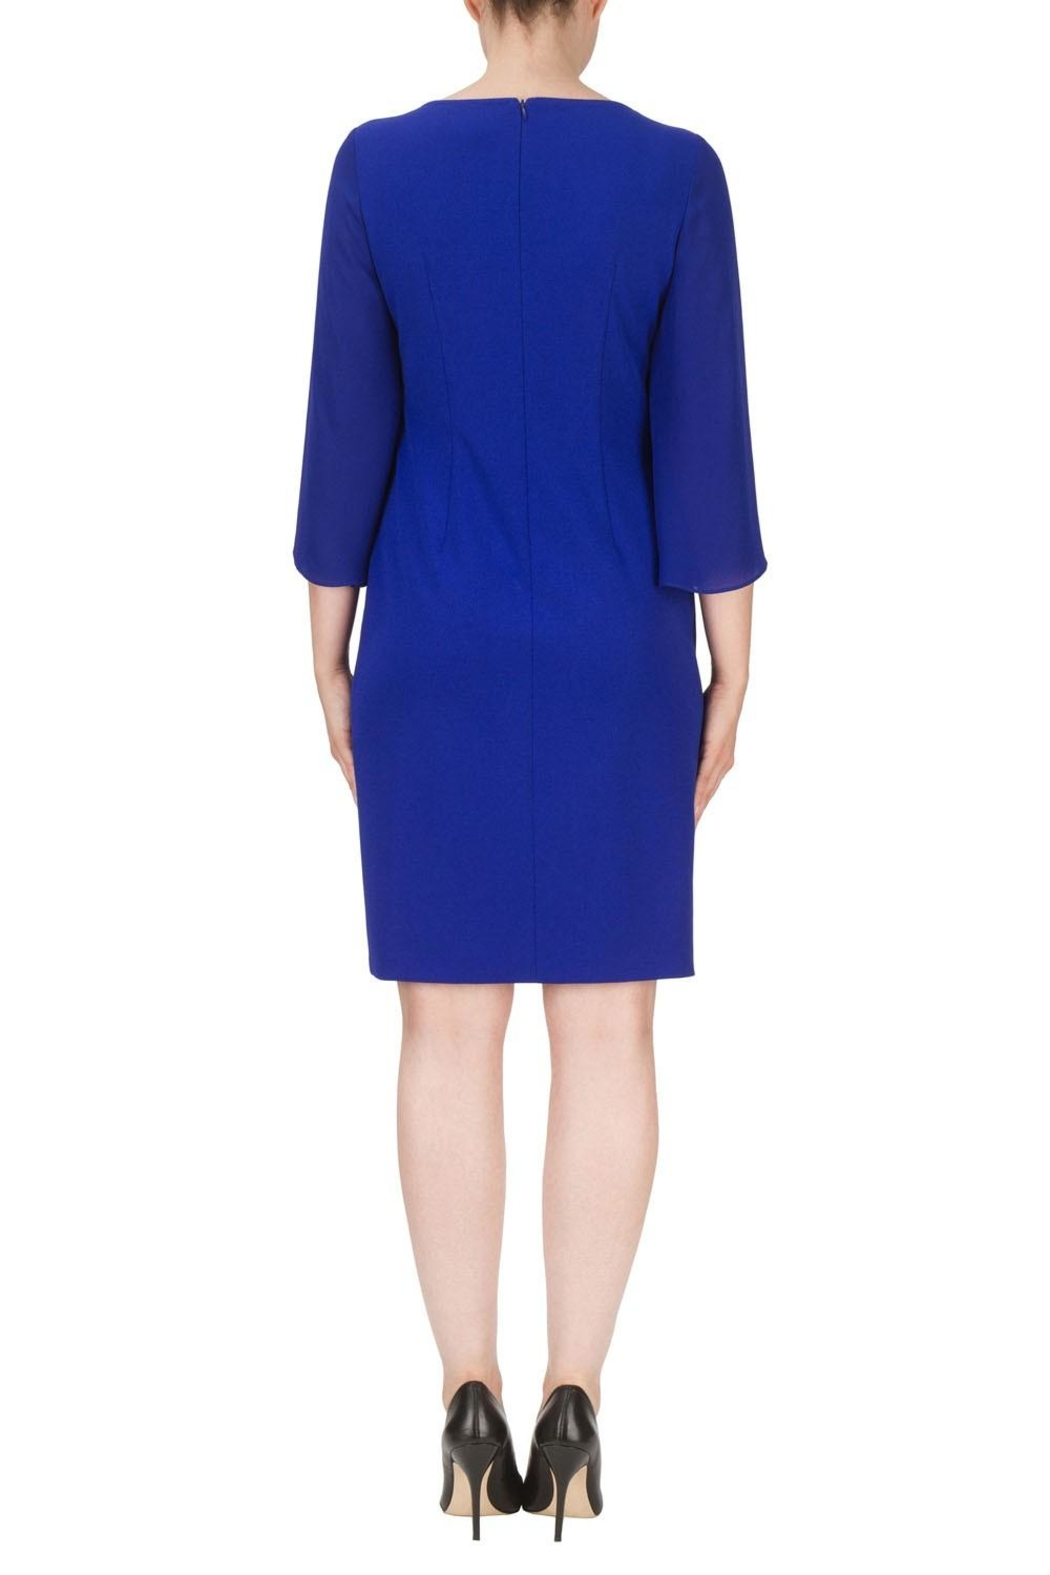 Joseph Ribkoff Blue Knee Length Dress - Side Cropped Image